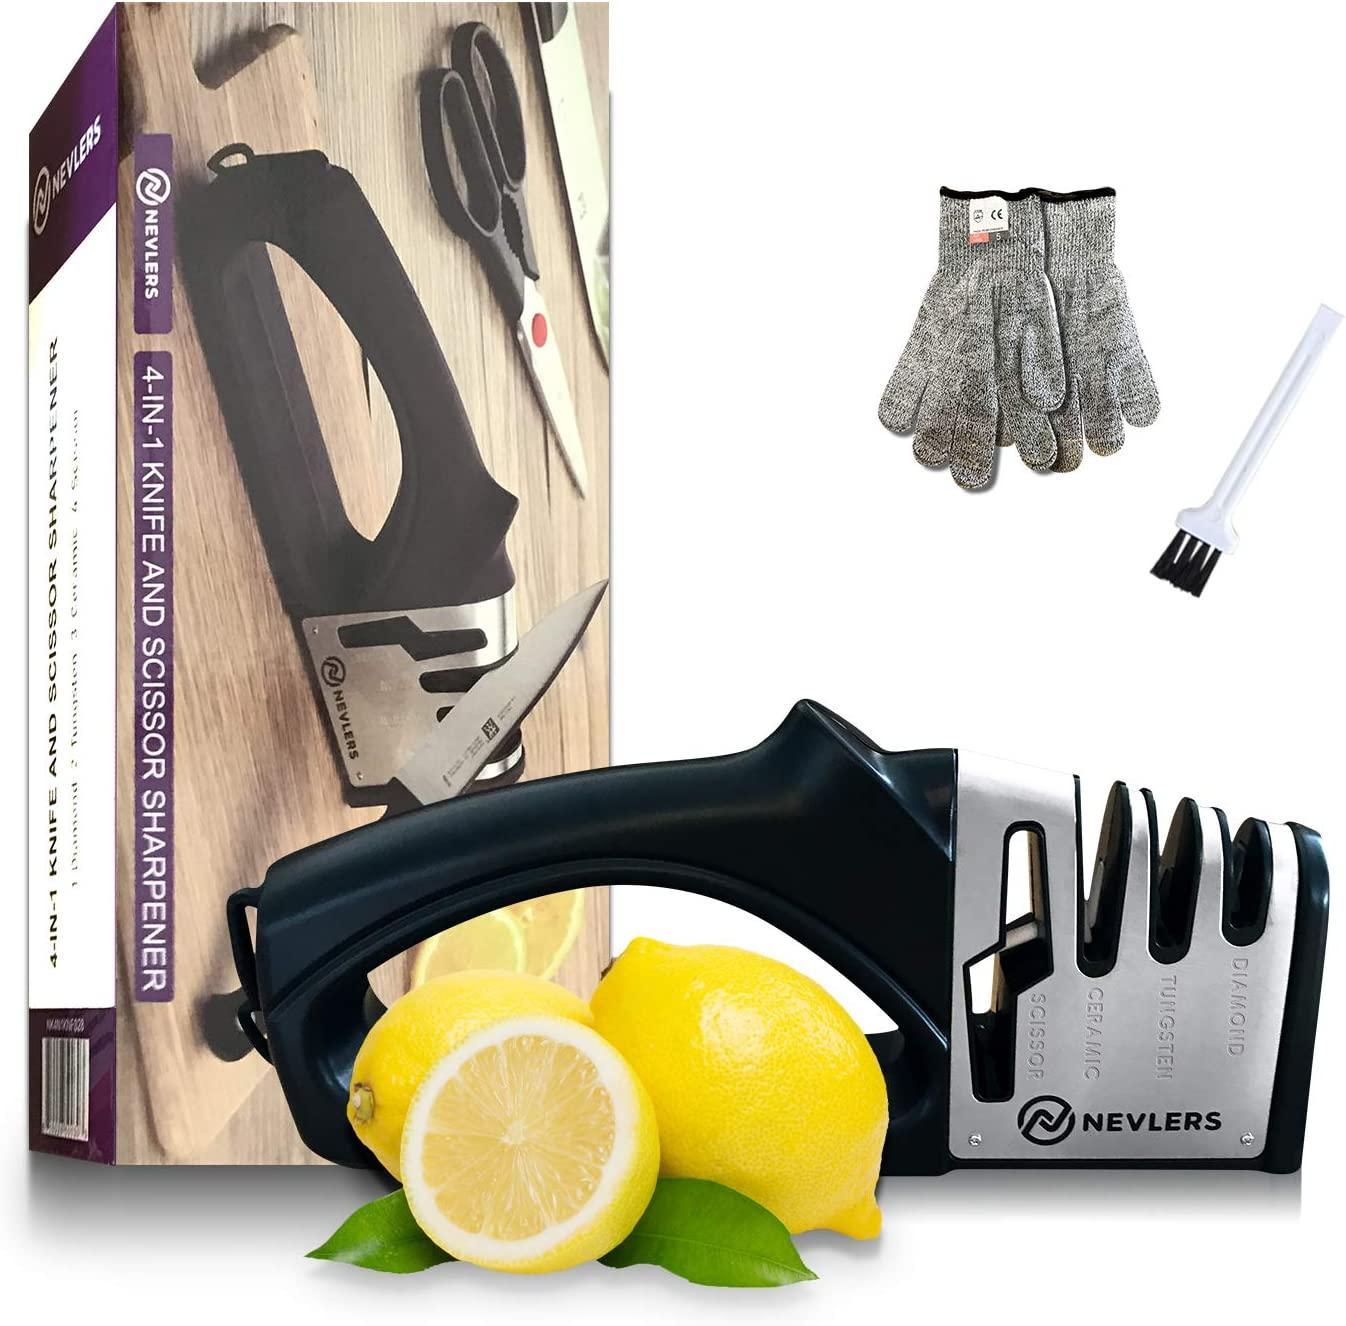 Nevlers 4 in 1 Knife Sharpener W/Ceramic Scissor Slot - 2 Cut Resistant Gloves and Mini Brush Included - Preps, Repairs, Sharpens, and Polishes Knives w/Diamond, Ceramic and Tungsten Steel Blades